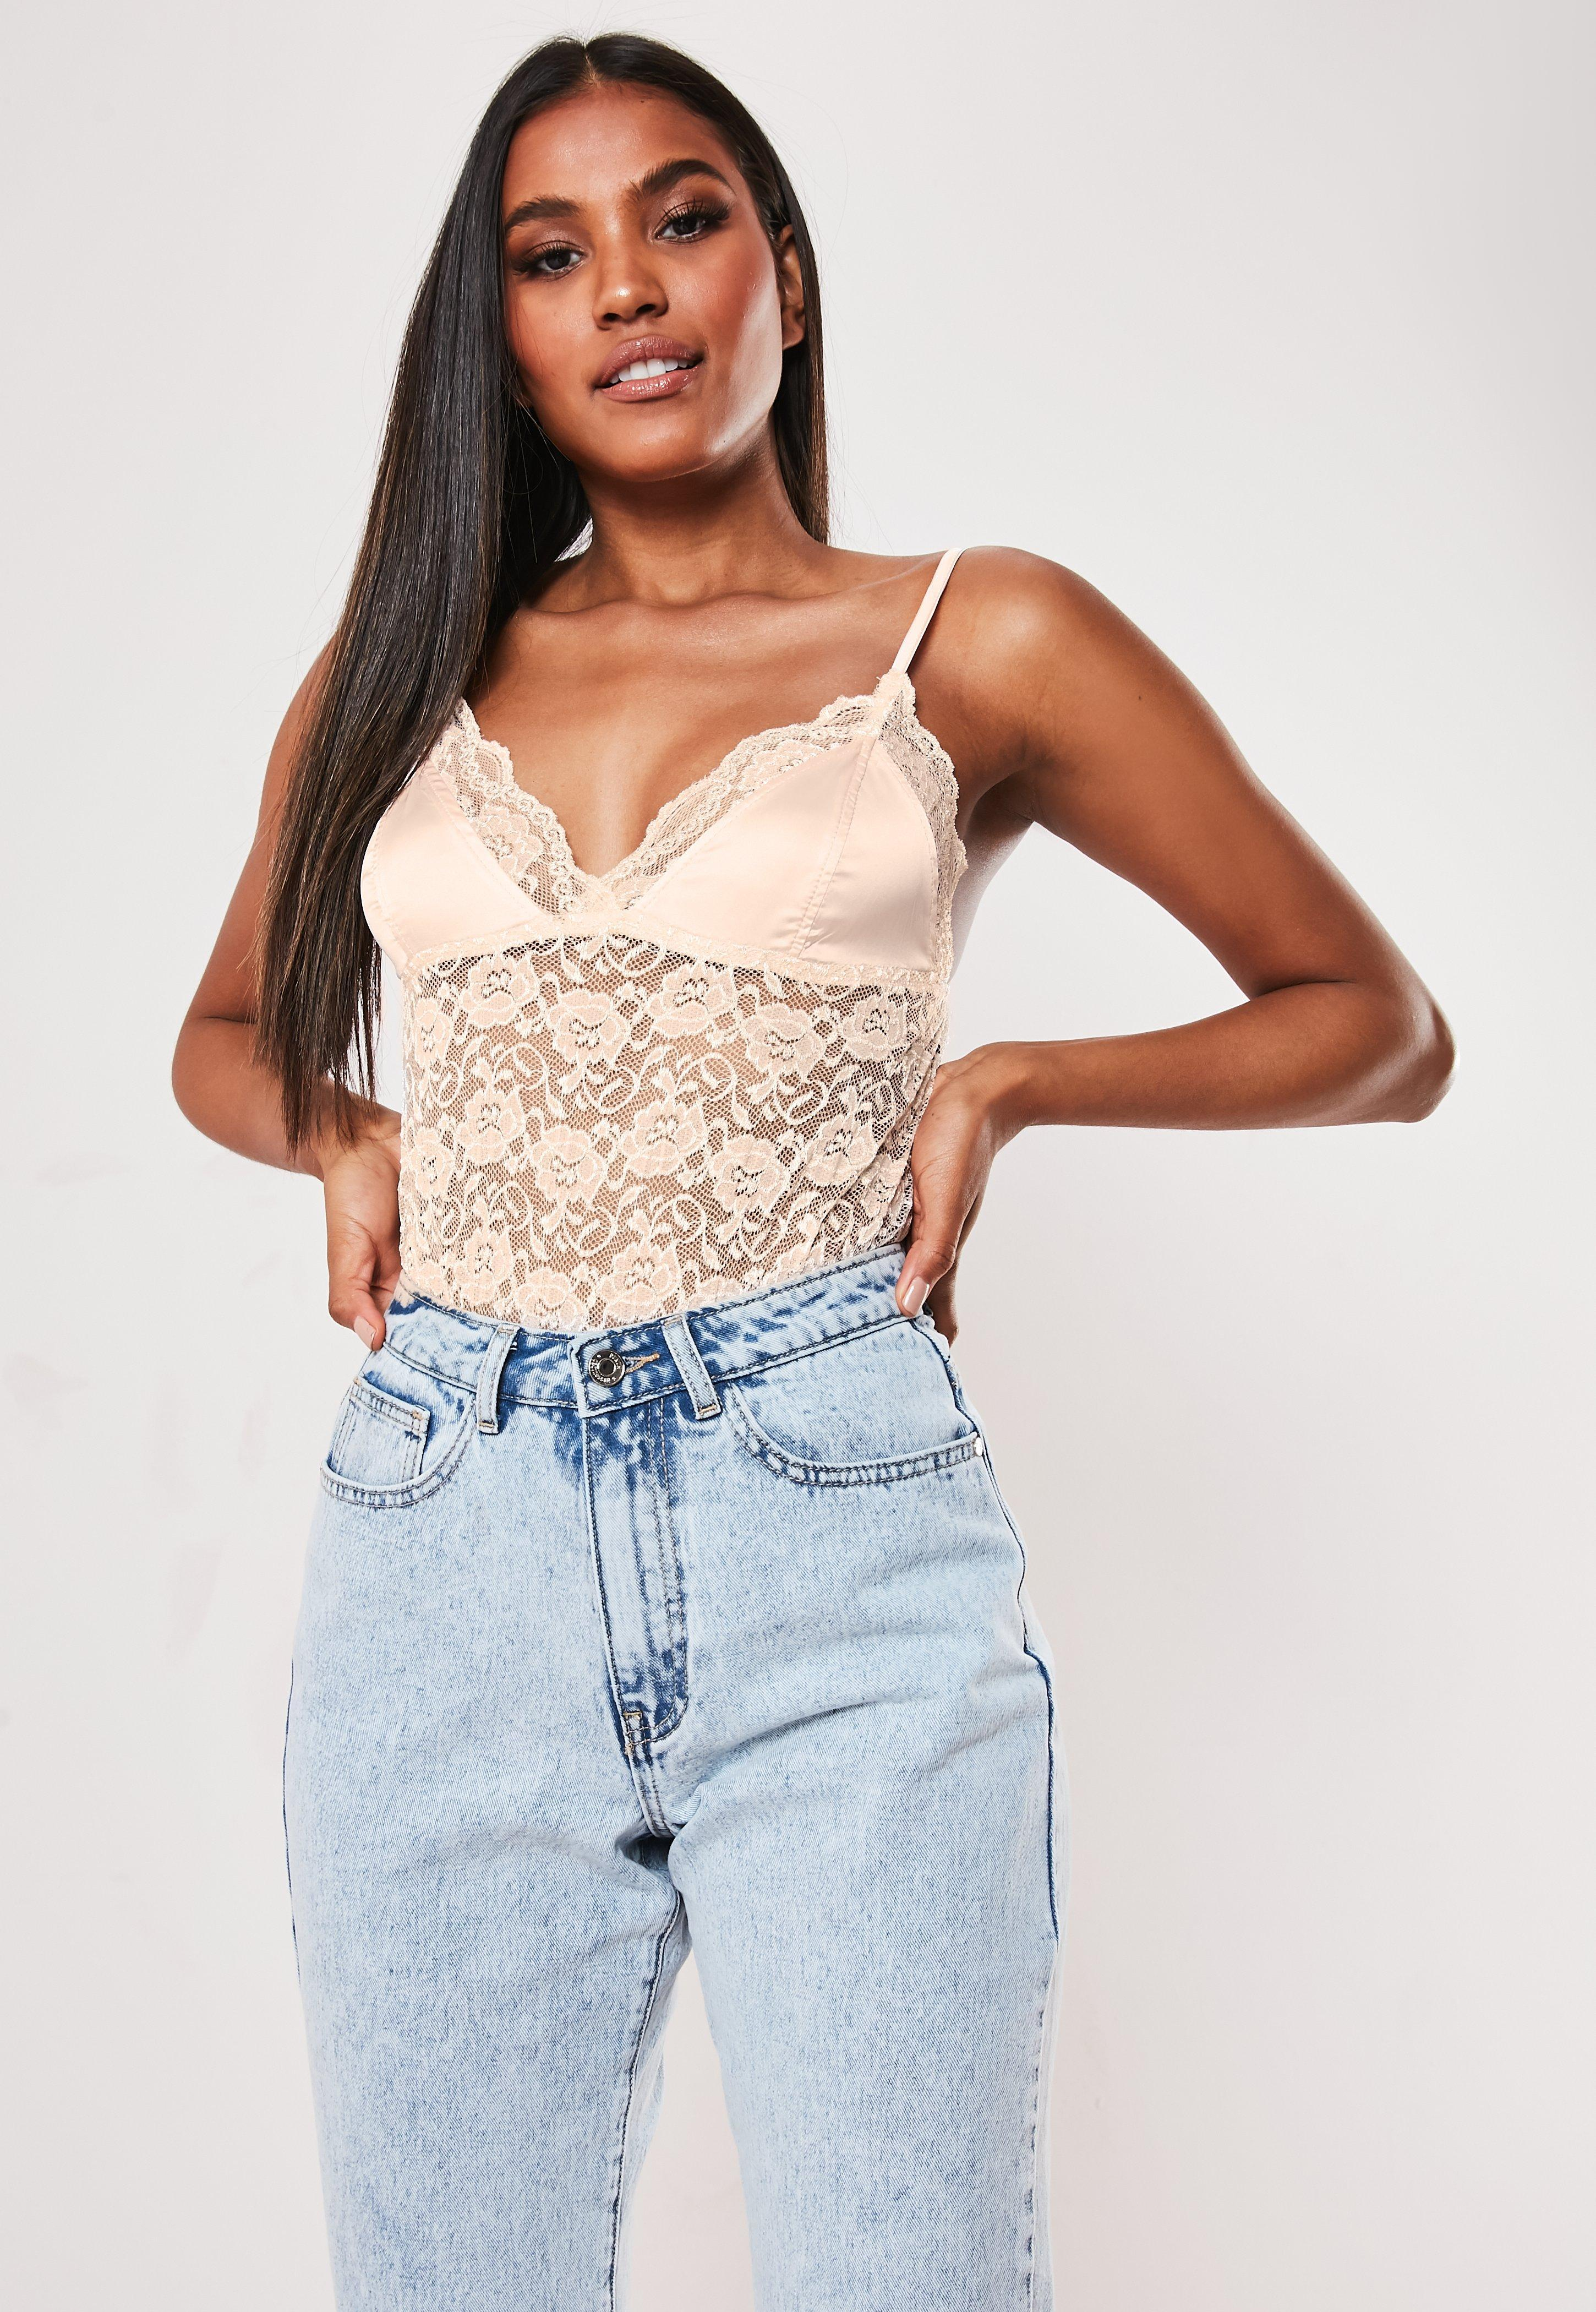 Lyst - Missguided Nude Lace Extreme Plunge Bralette in Natural